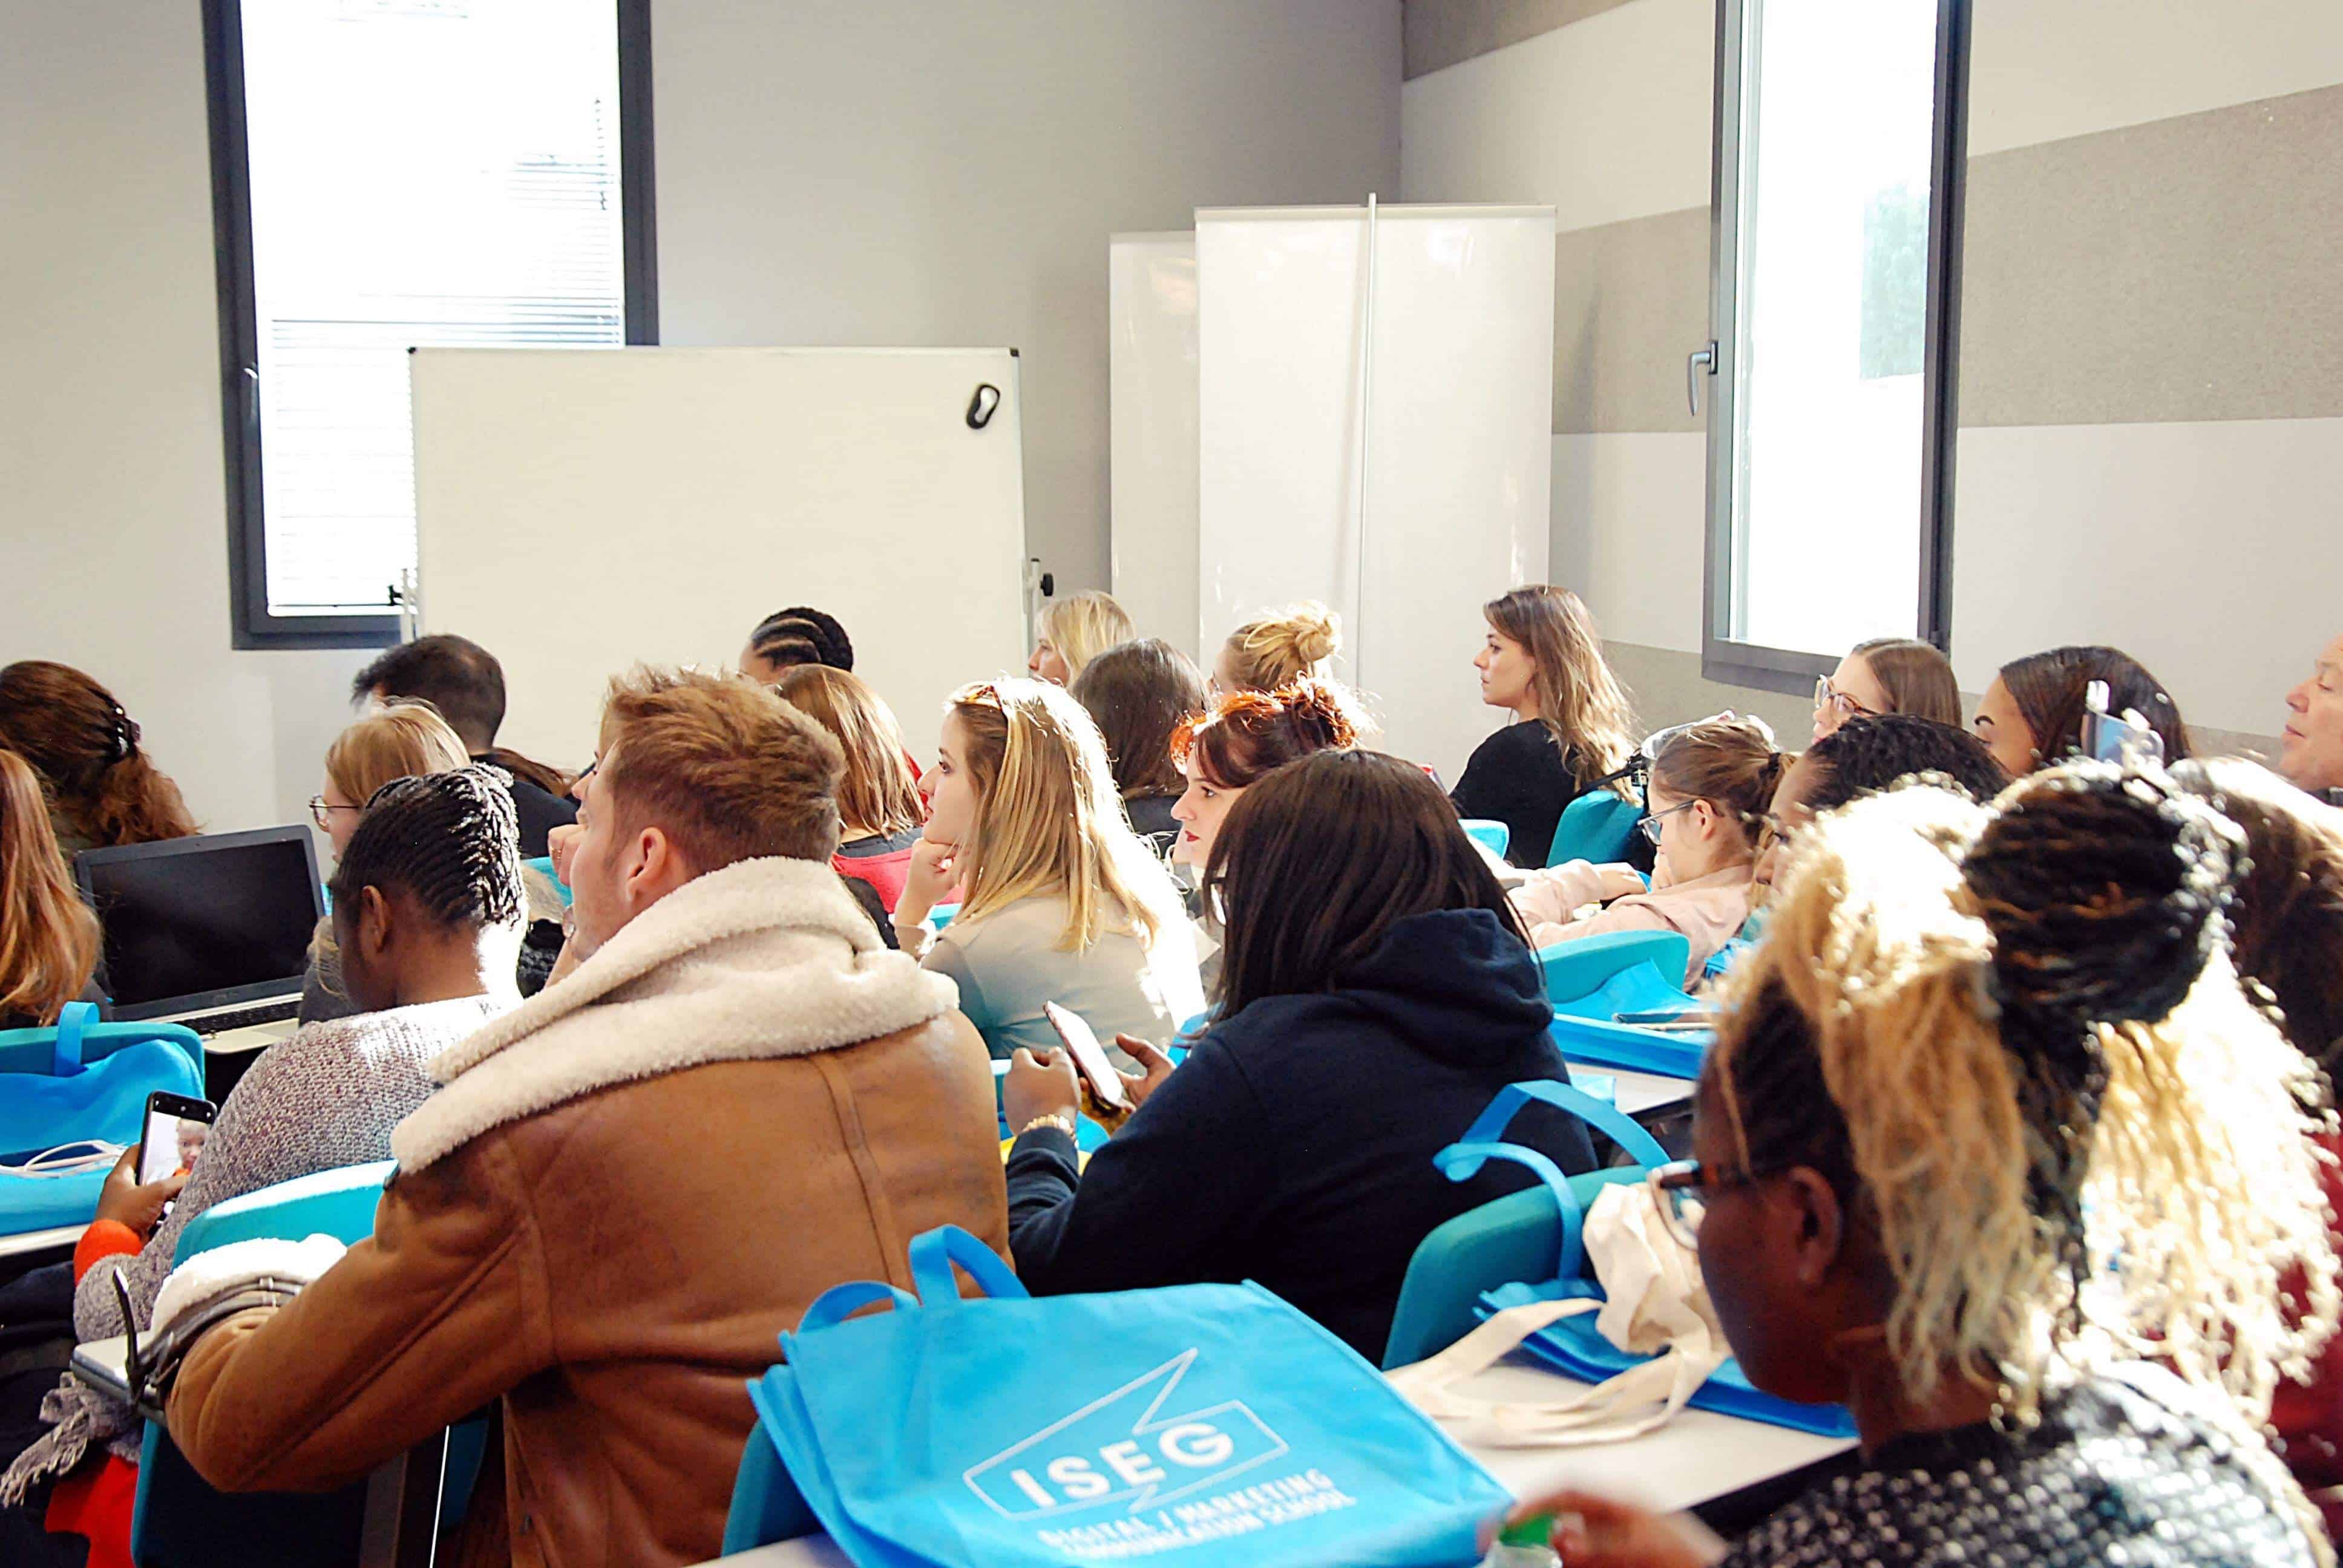 Journée d'immersion à l'ISEG Bordeaux